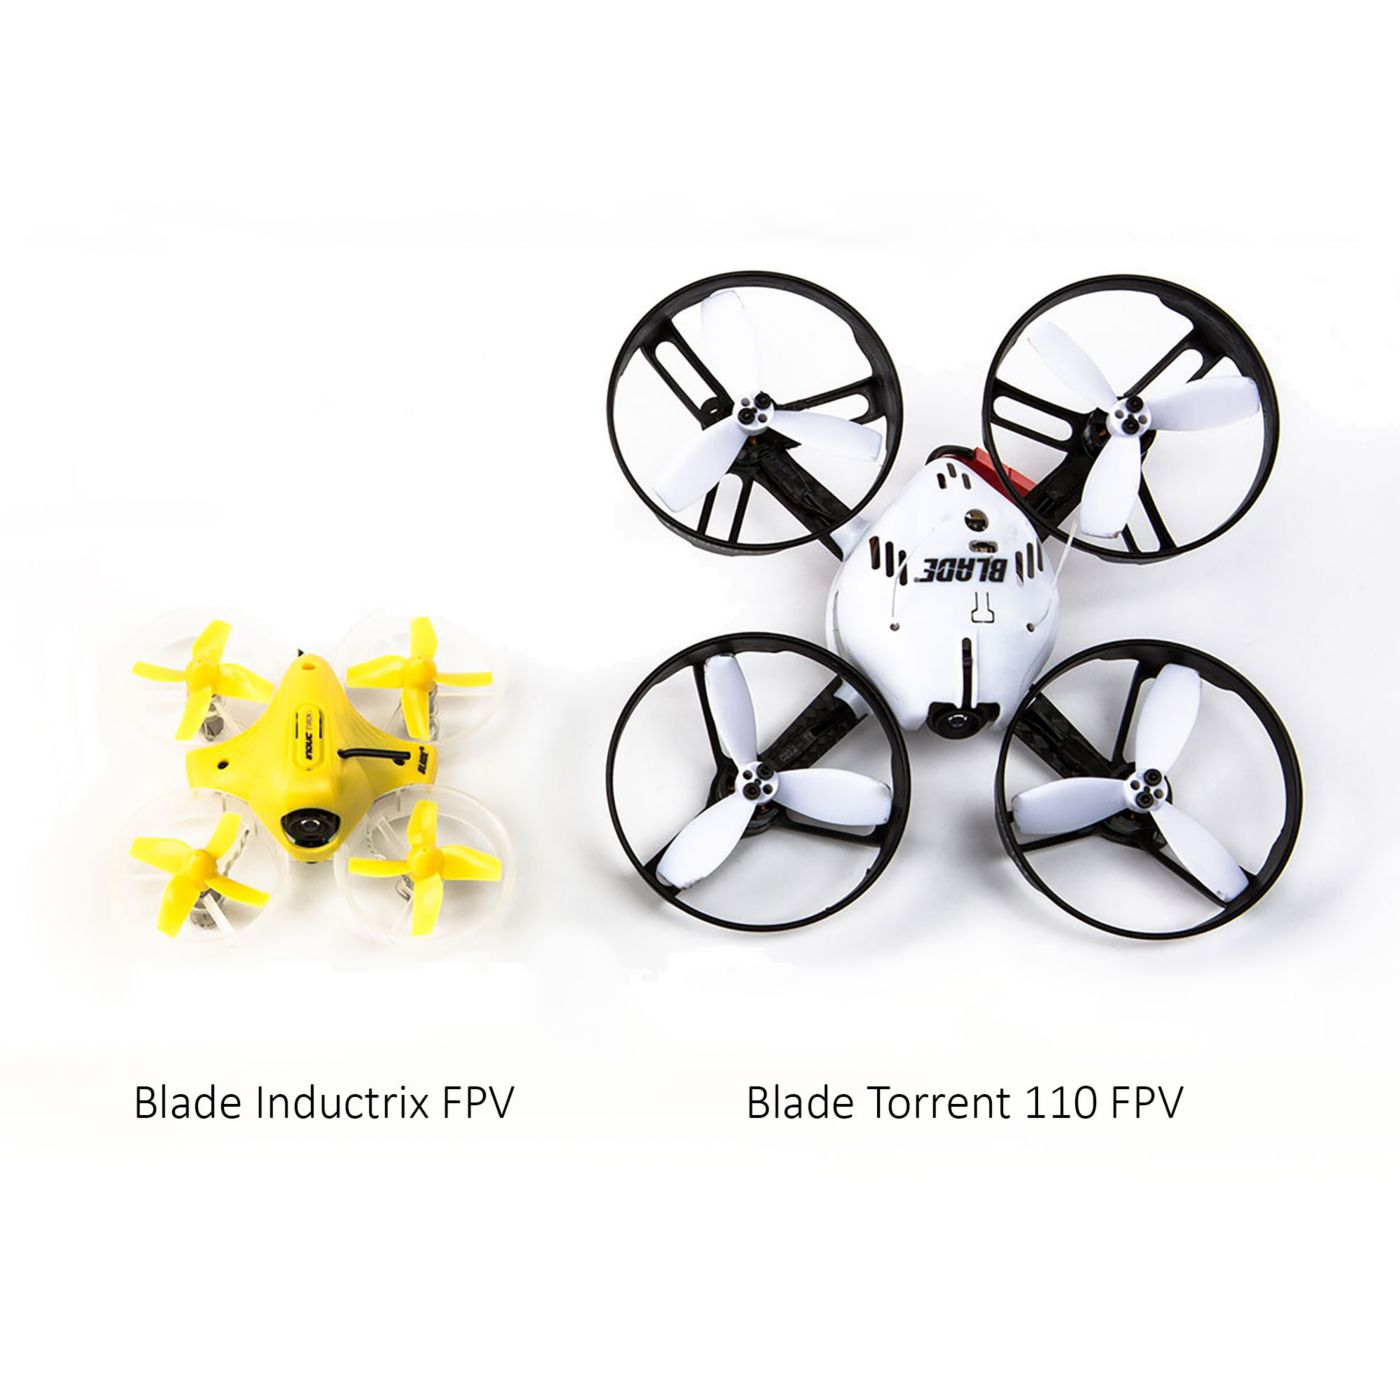 BladeTorrent 110 FPV BNF Basic ※入荷